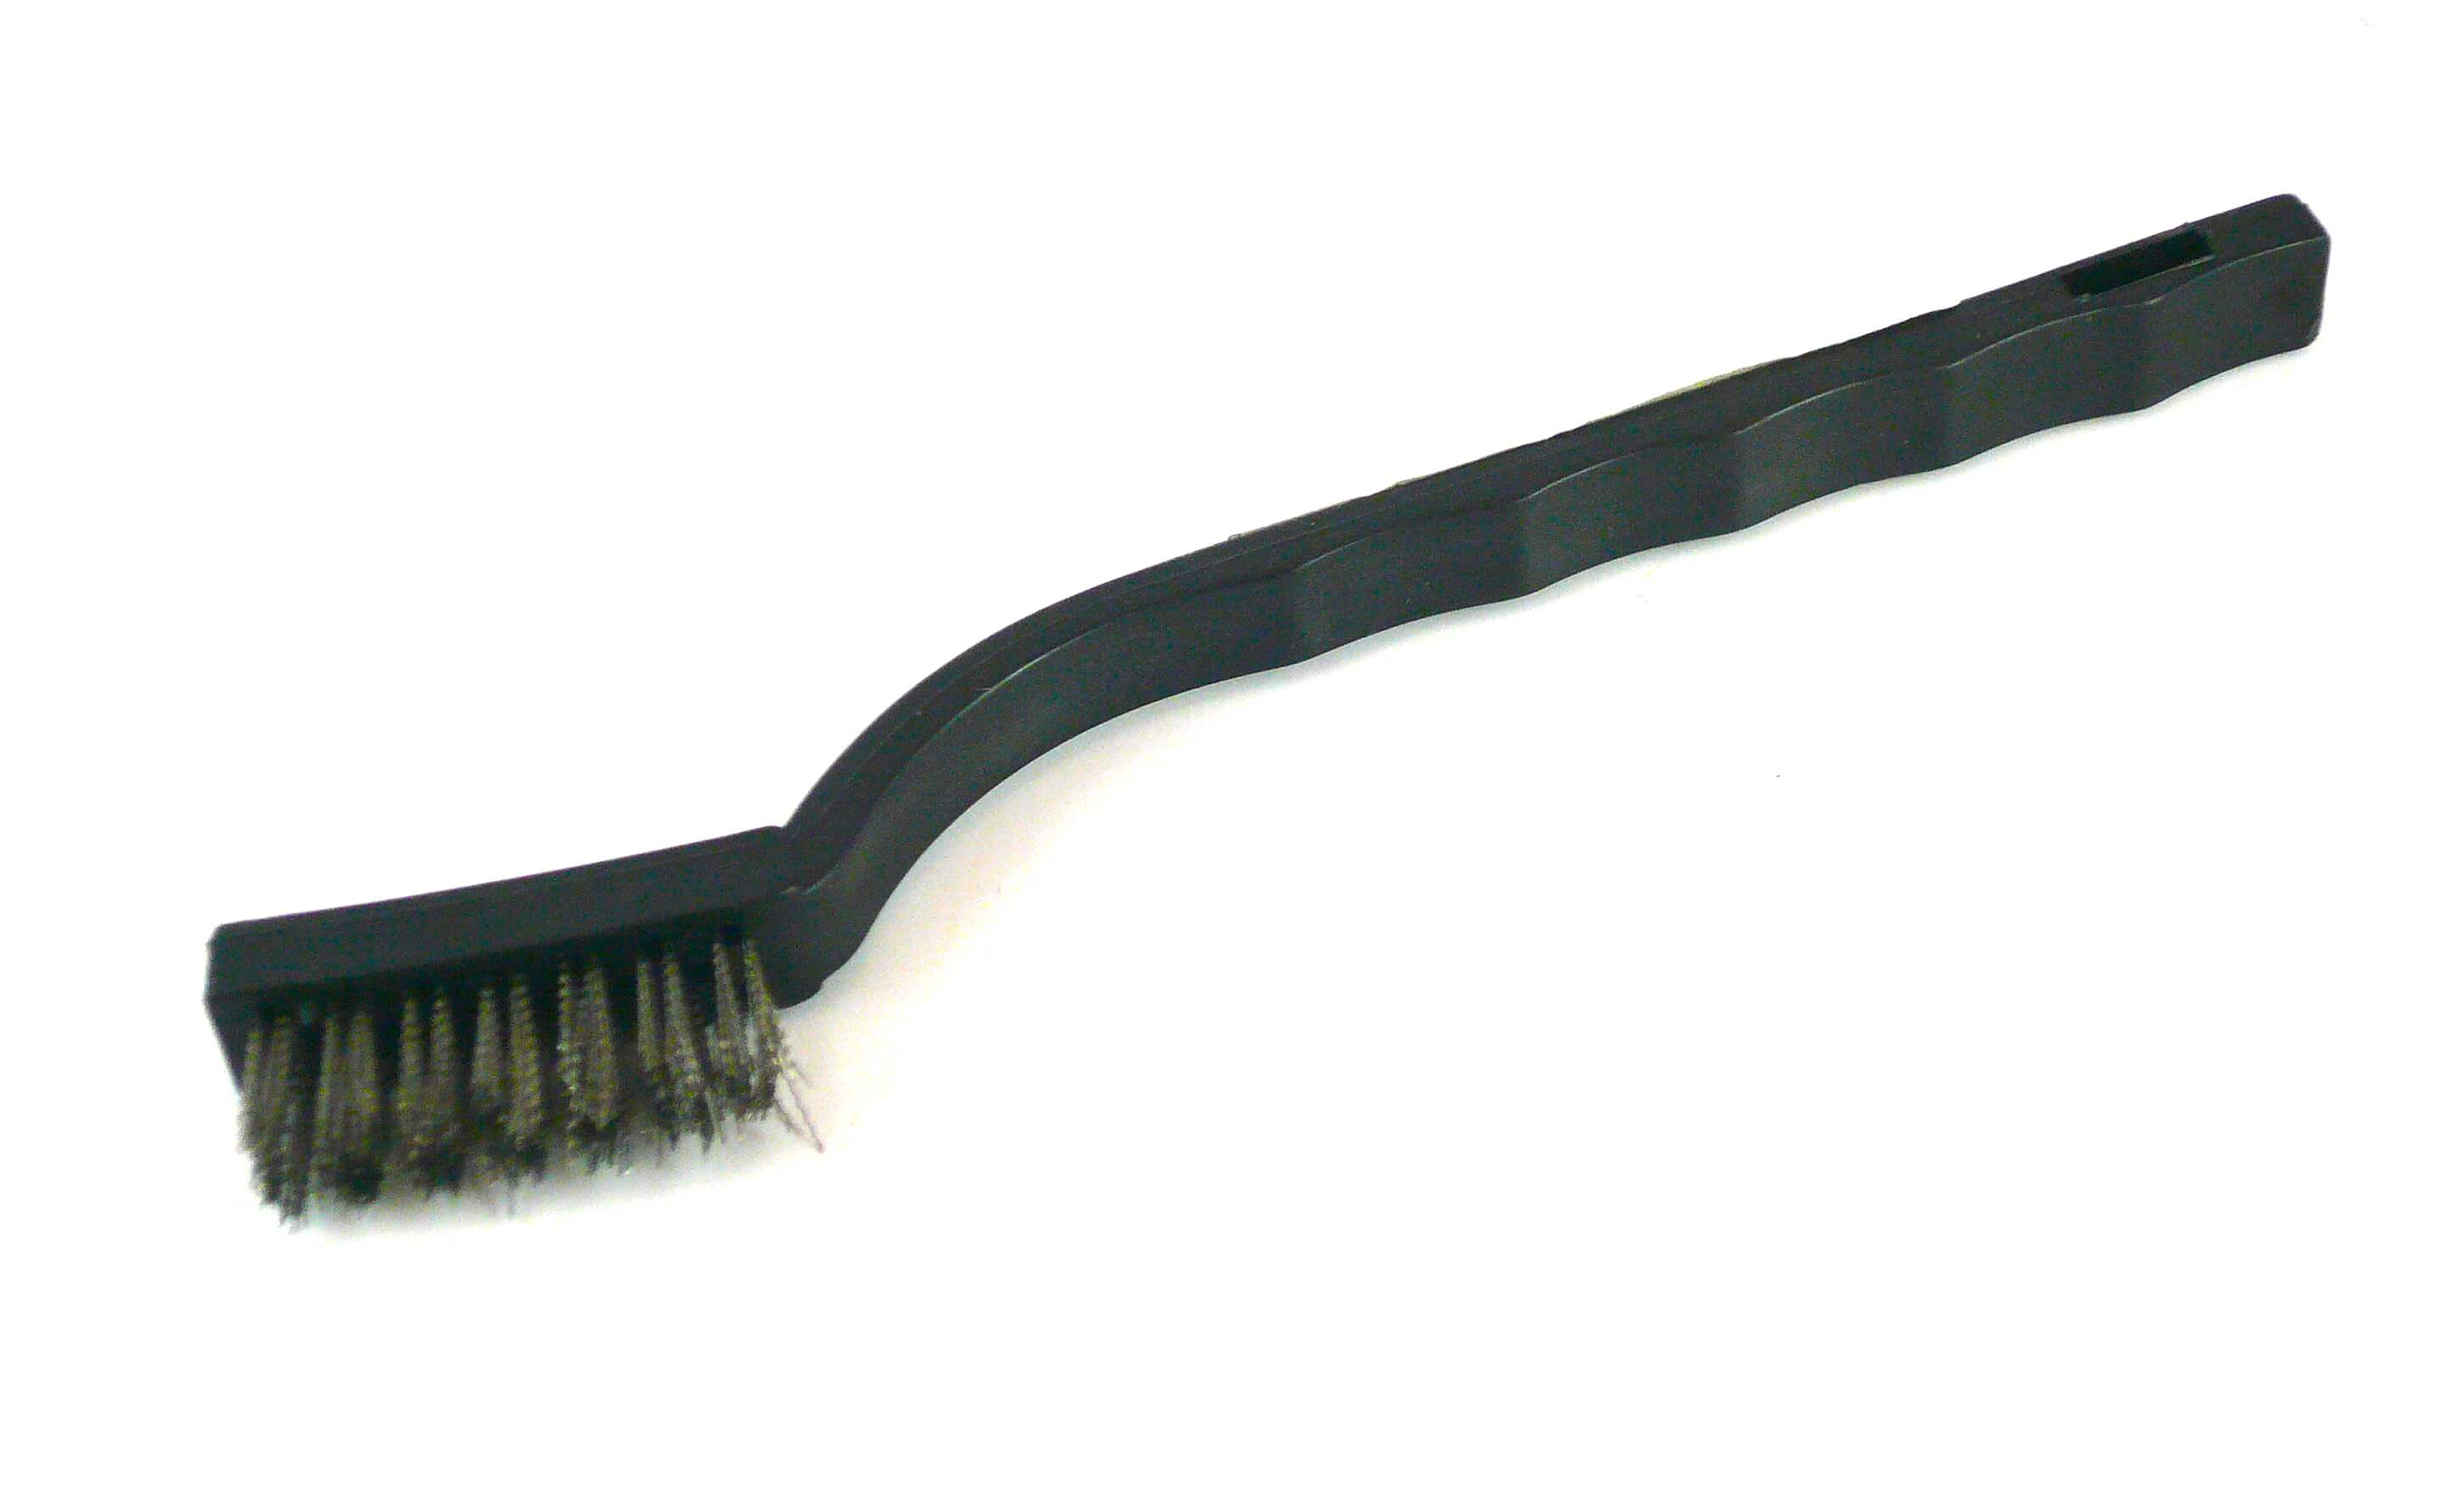 LEB Hobbies Stainless Steel Braid Brush